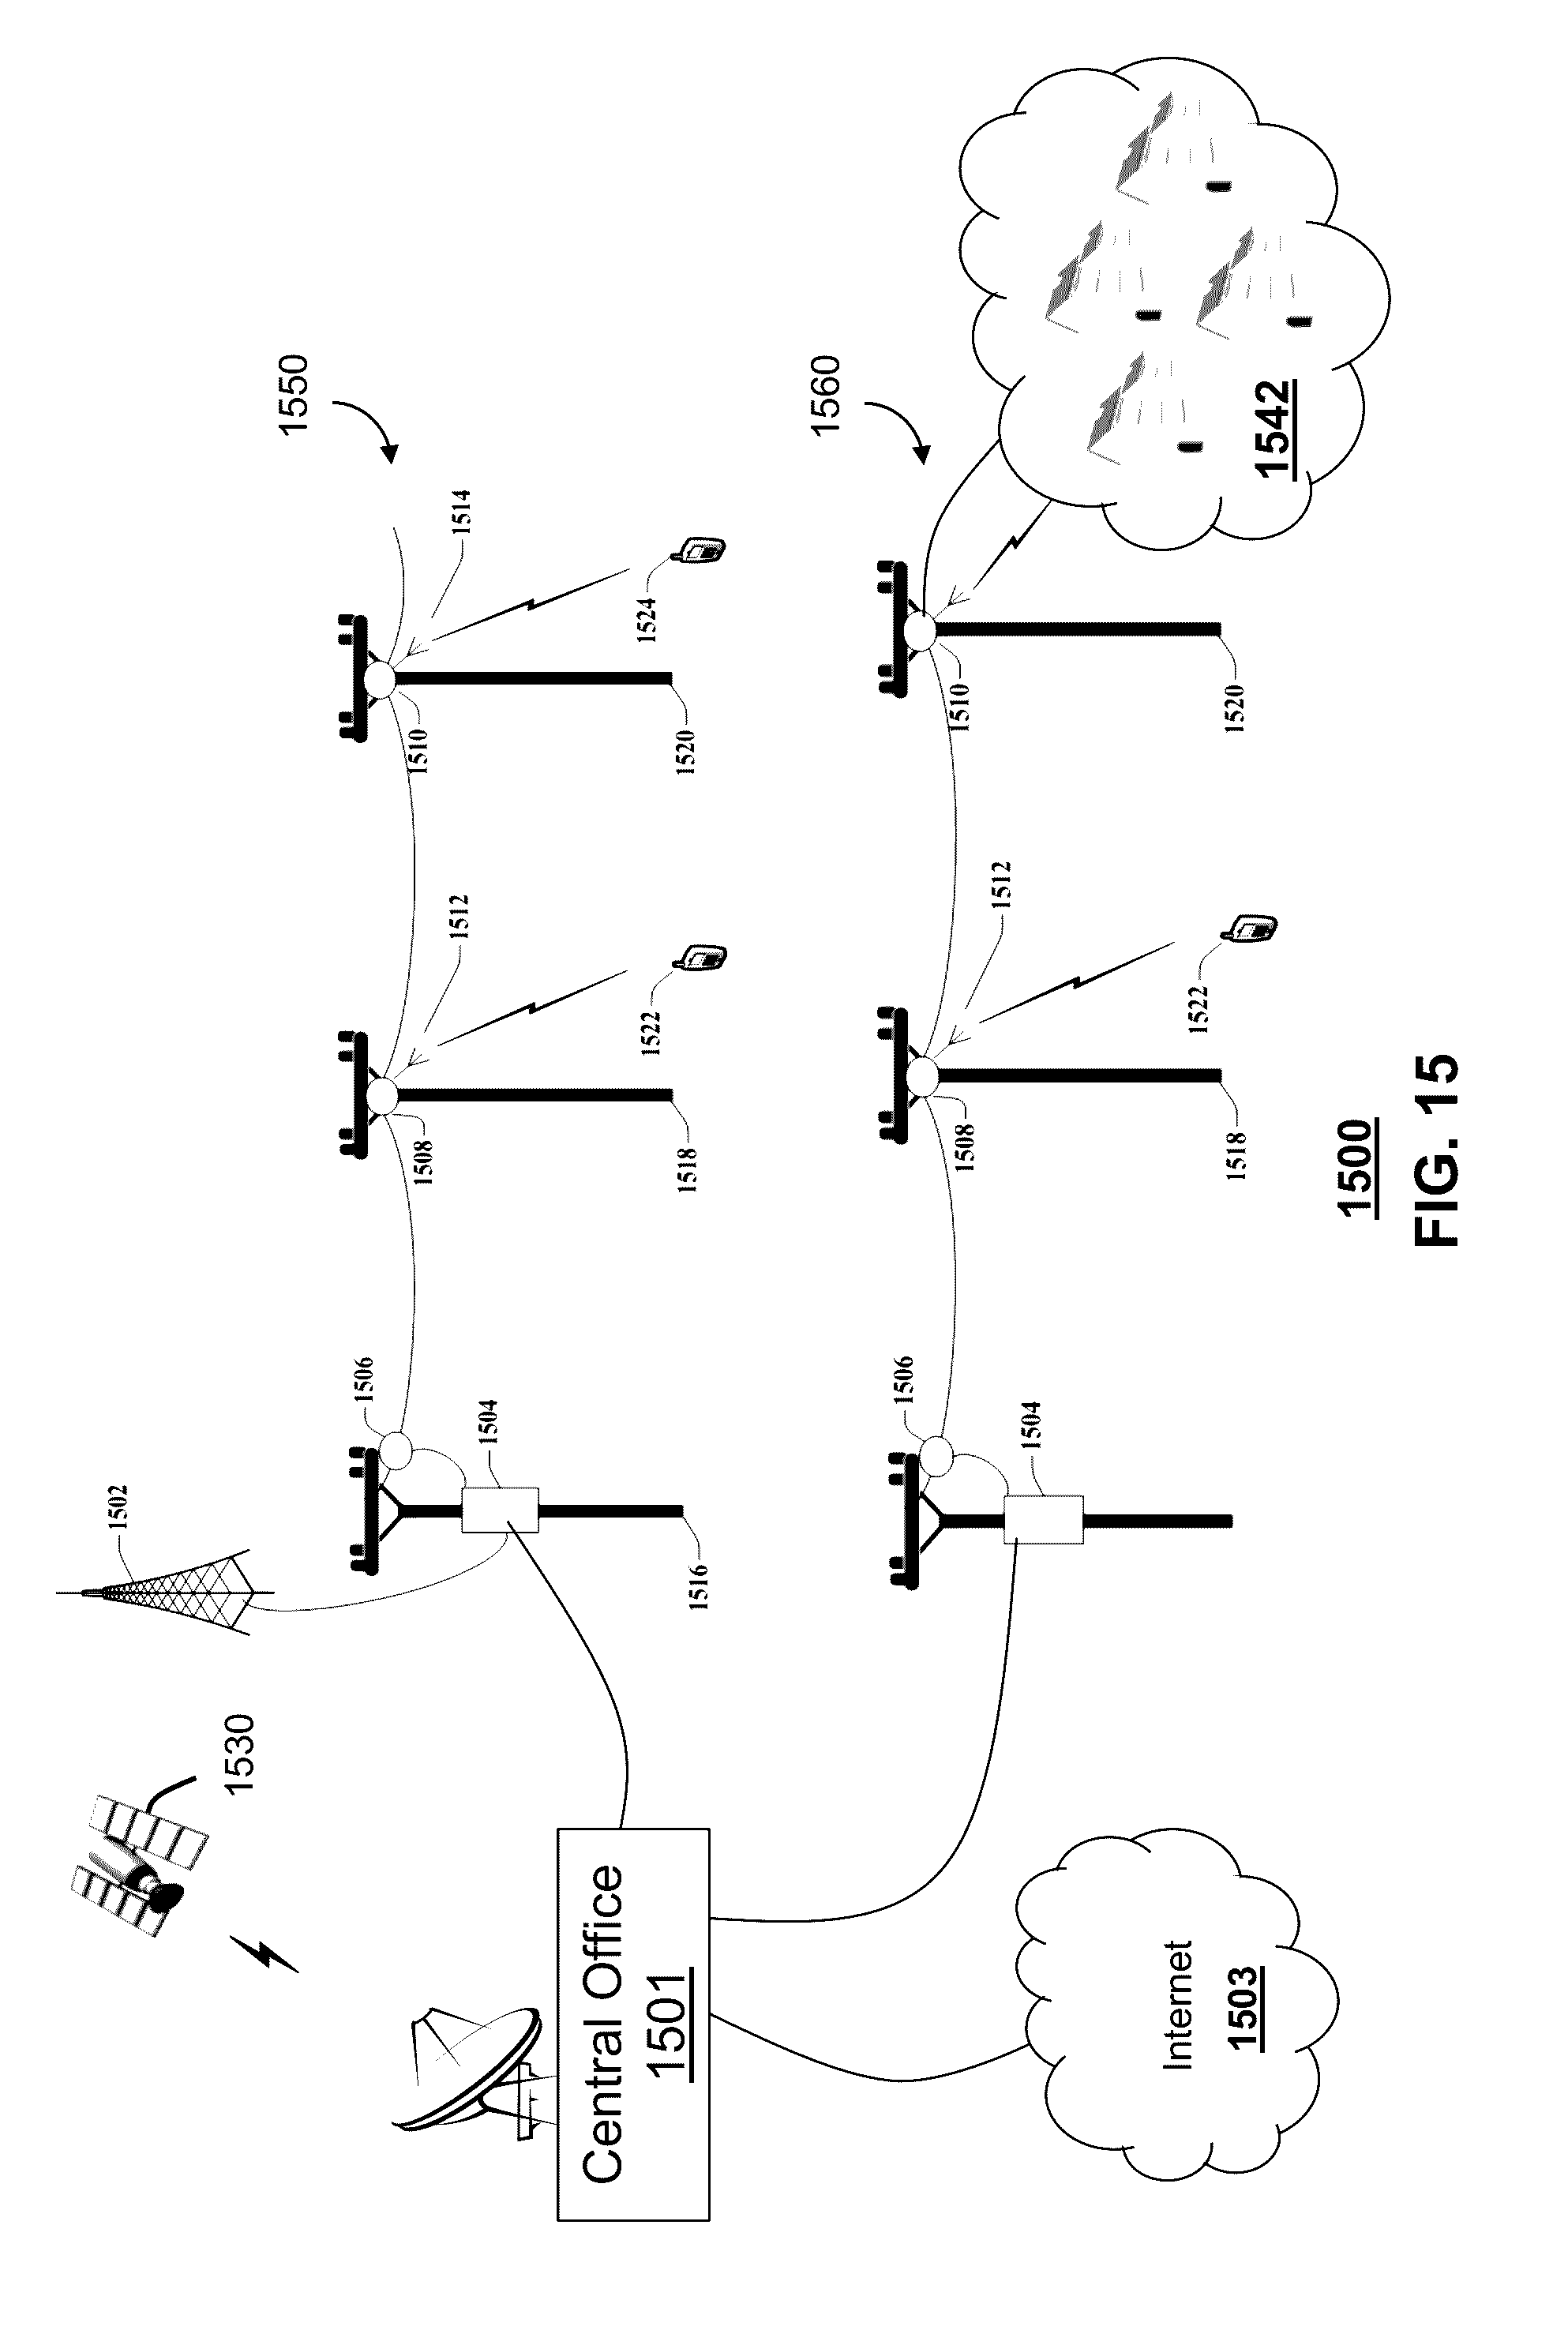 US20170018856A1 - Antenna system with dielectric array and